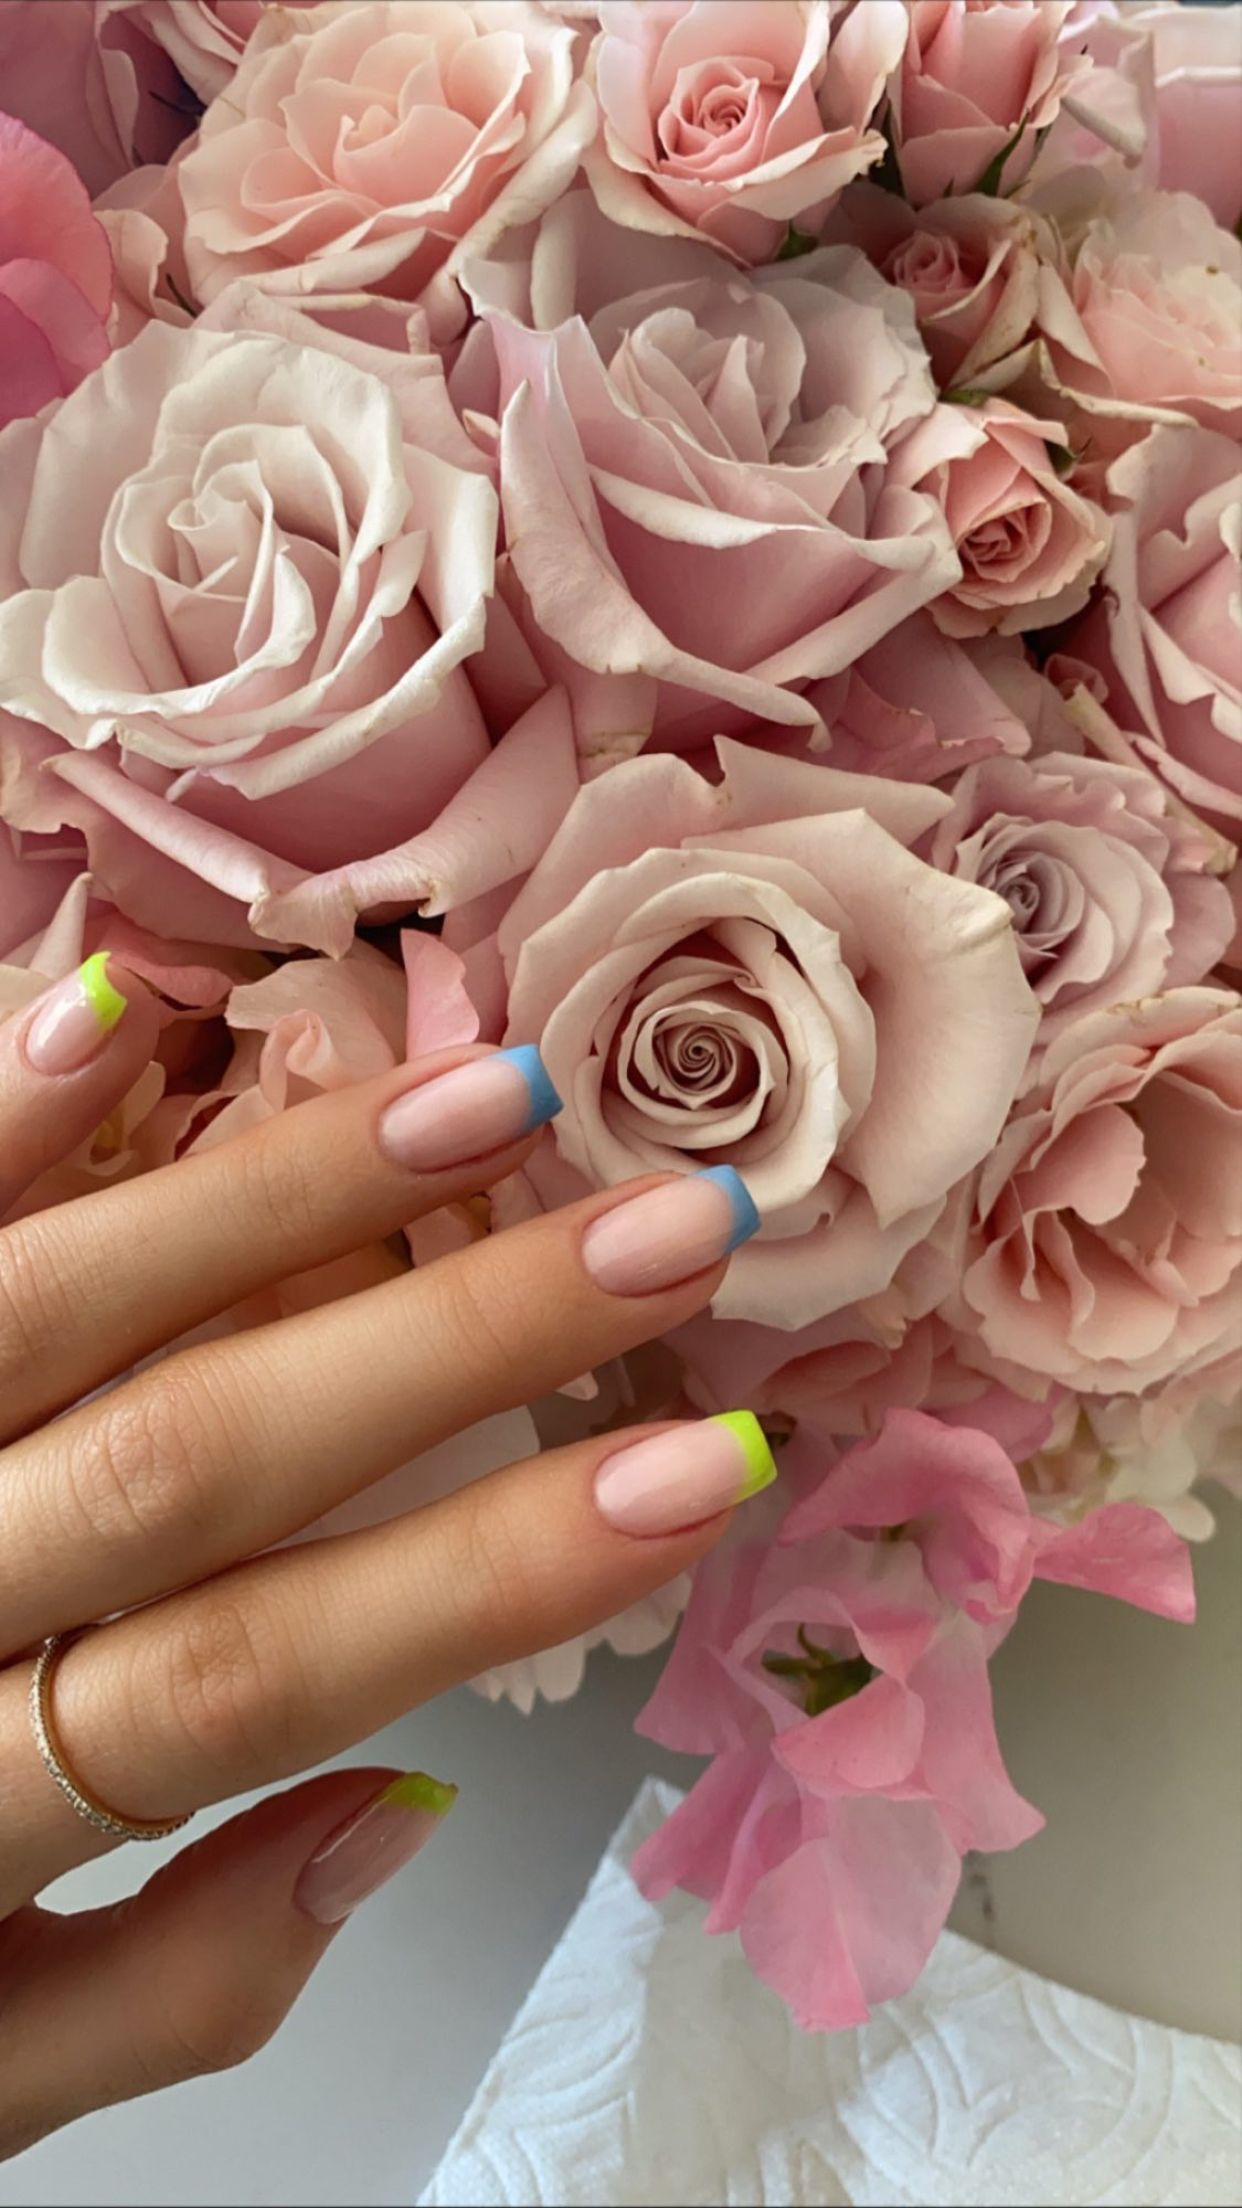 Kylie Jenner Colorful French Manicure Nail Art In 2020 Sparkle Gel Nails Kylie Jenner Nails Simple Gel Nails